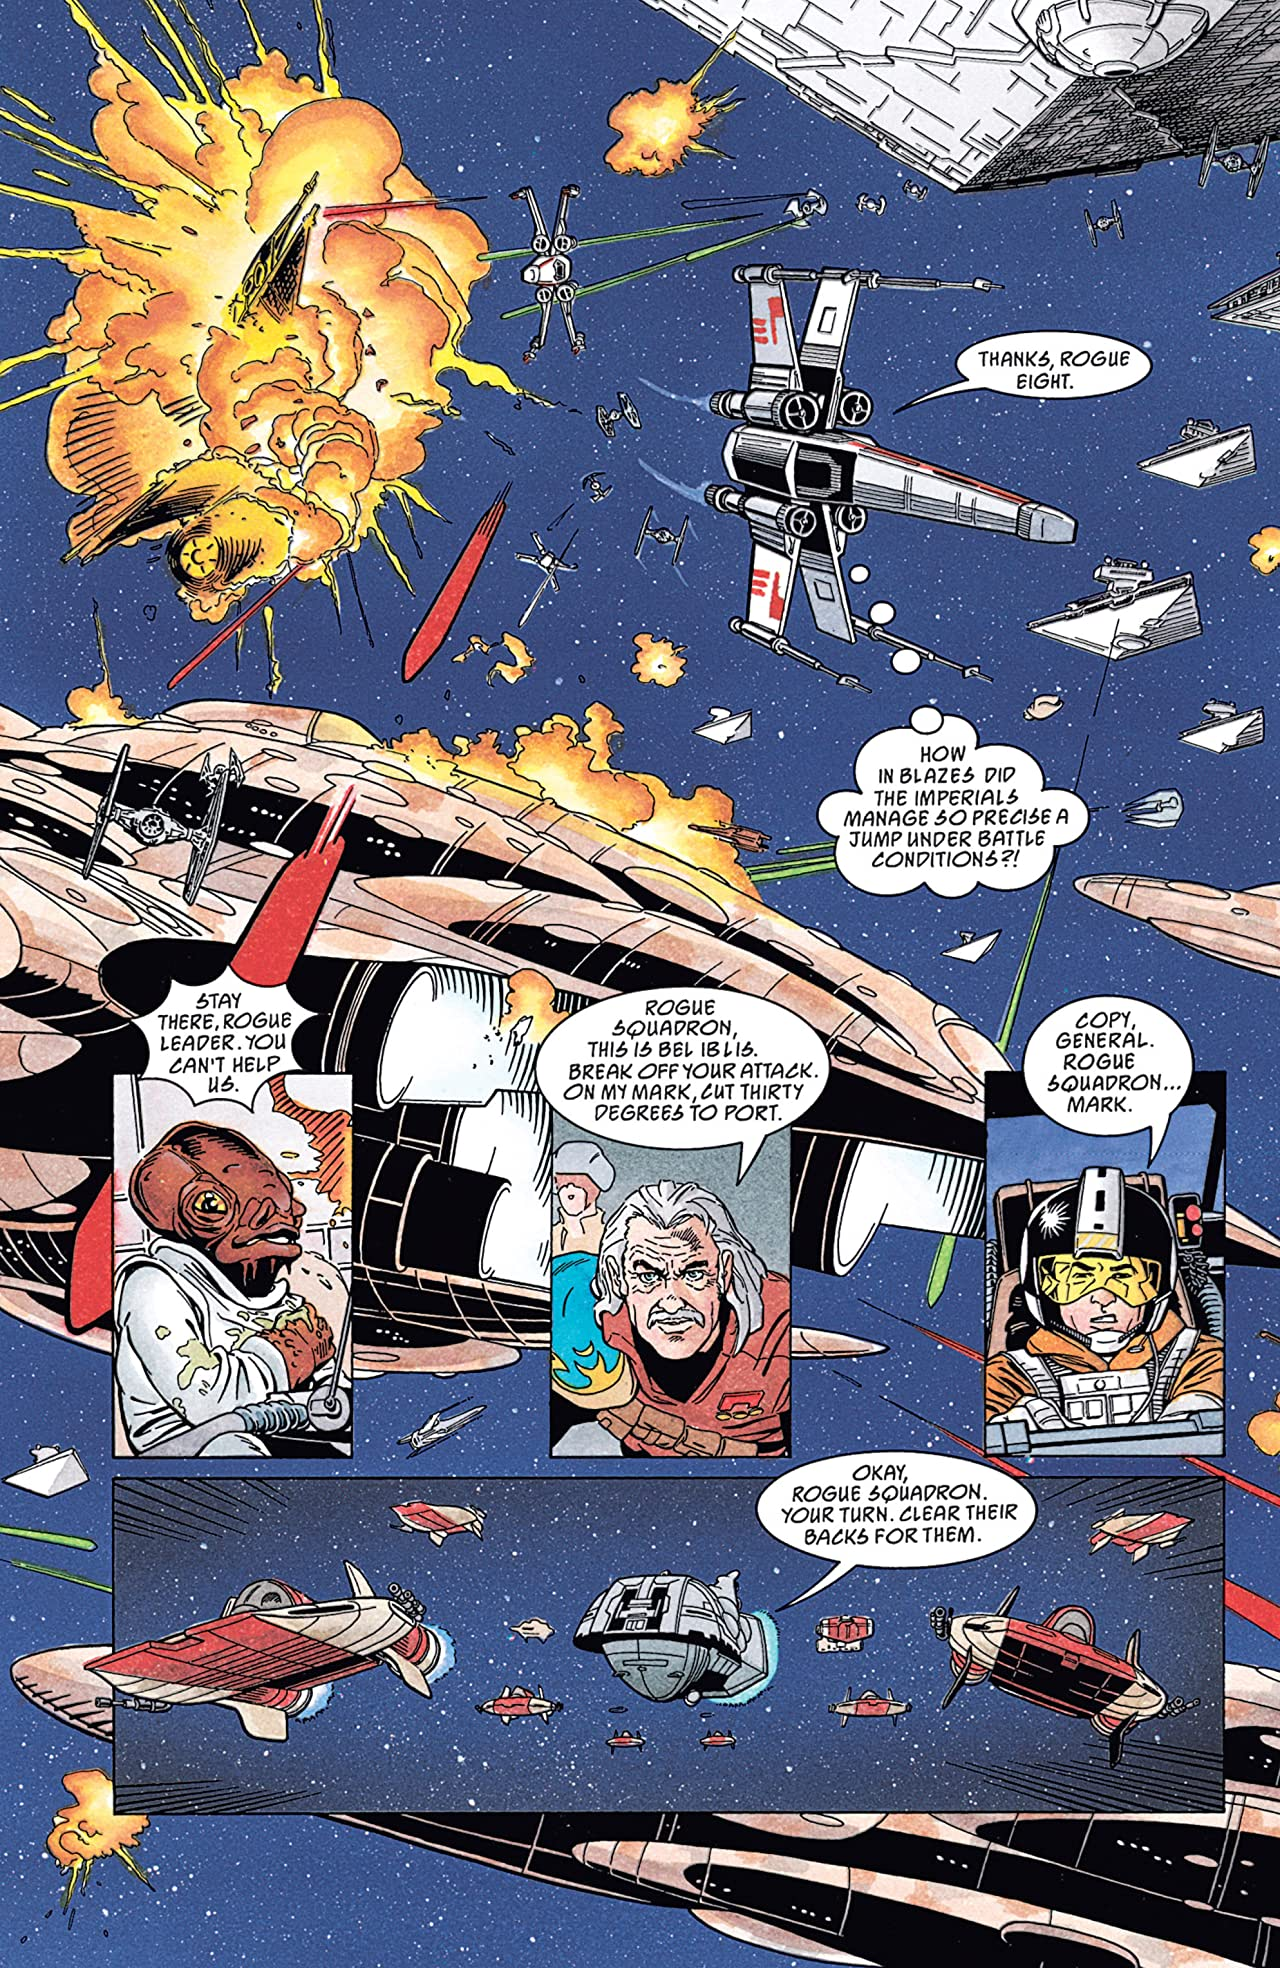 Star Wars: The Last Command (1997-1998) #2 (of 6)